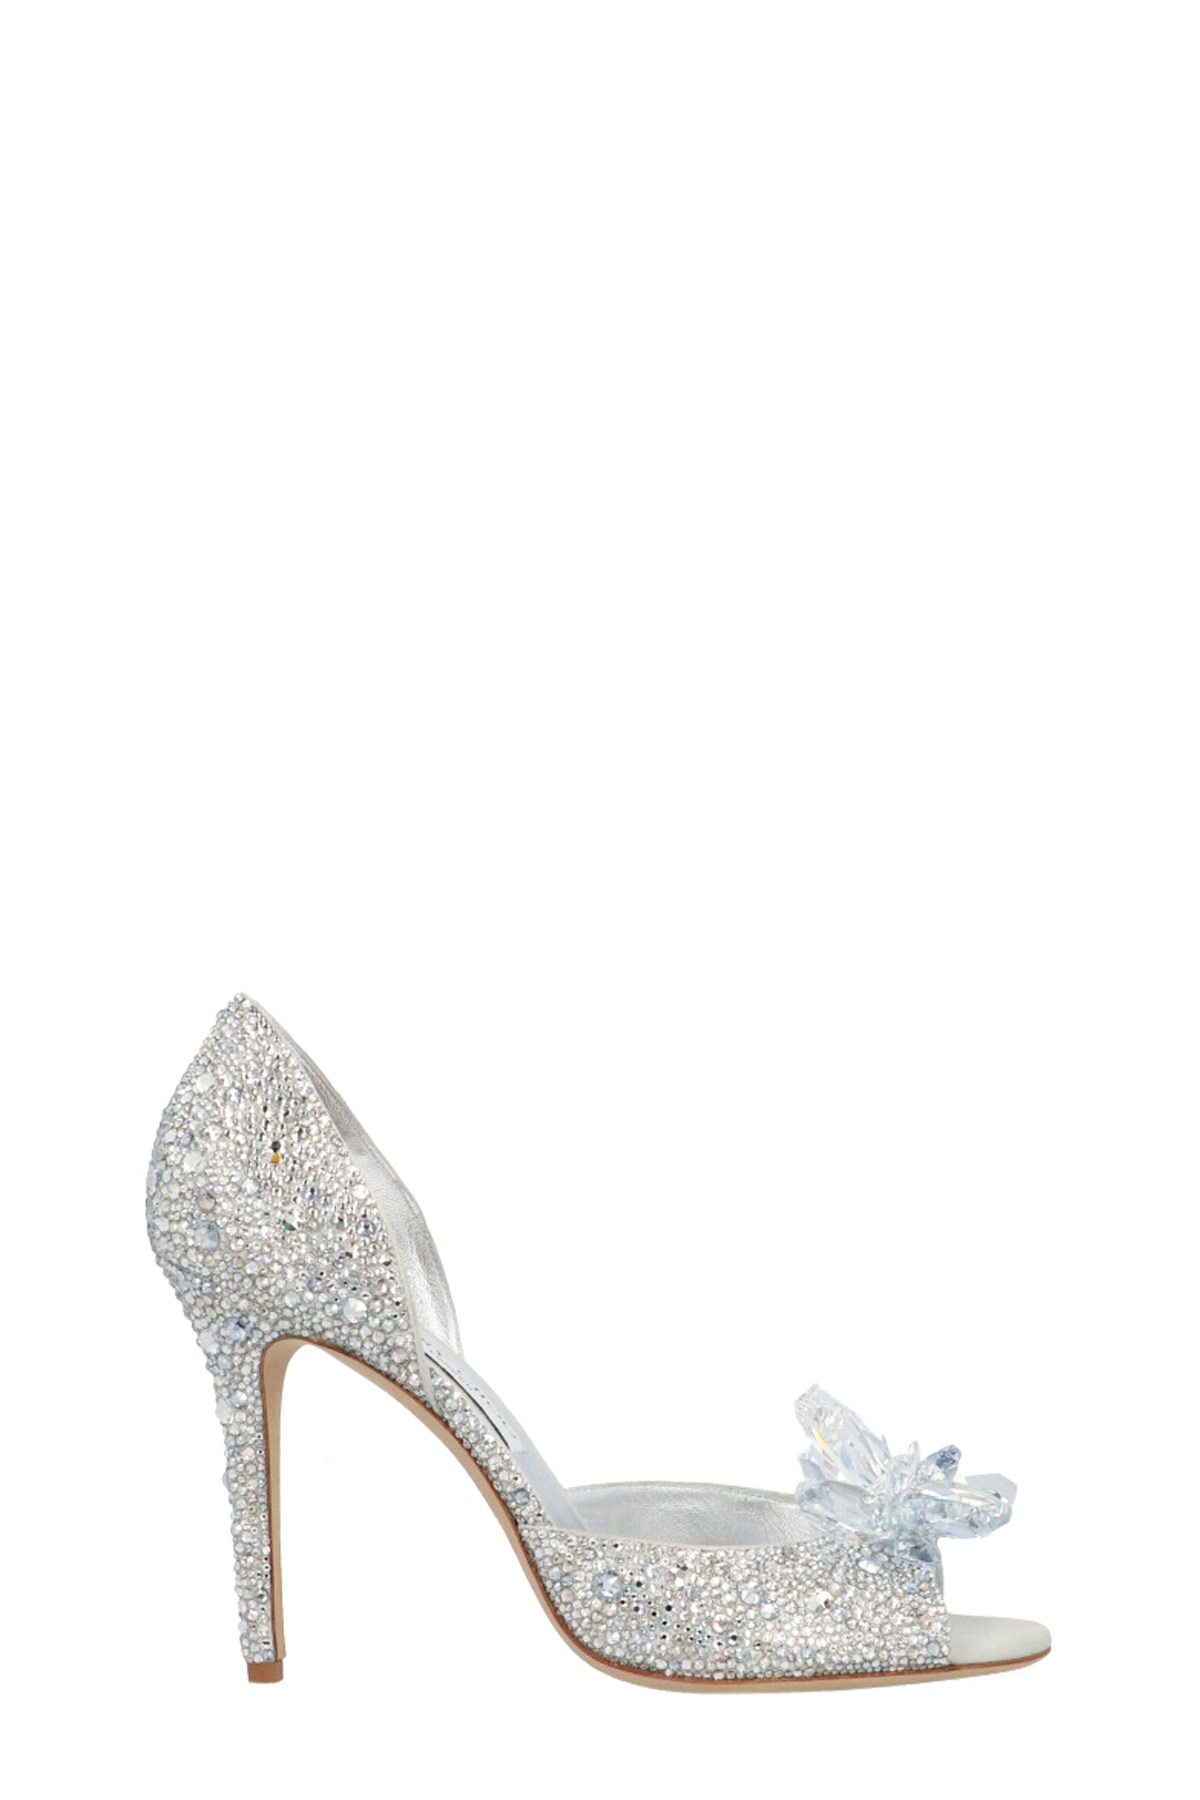 jimmy choo 'Cinderella' pumps available